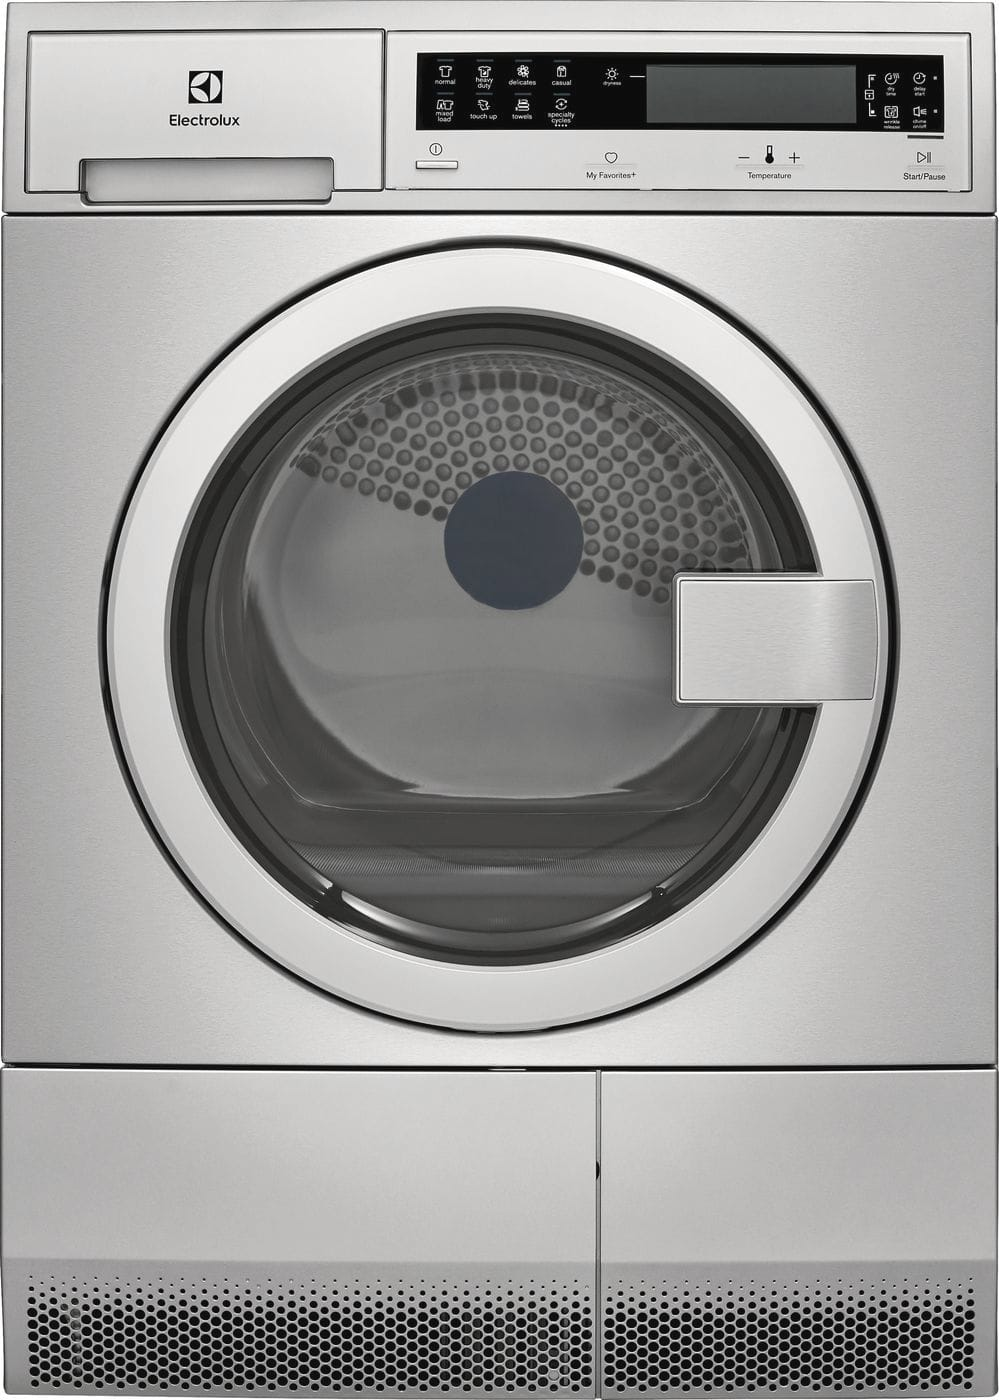 Electrolux Front Load Compact Dryer with IQ-Touch® Controls - 4.0 Cu. Ft.